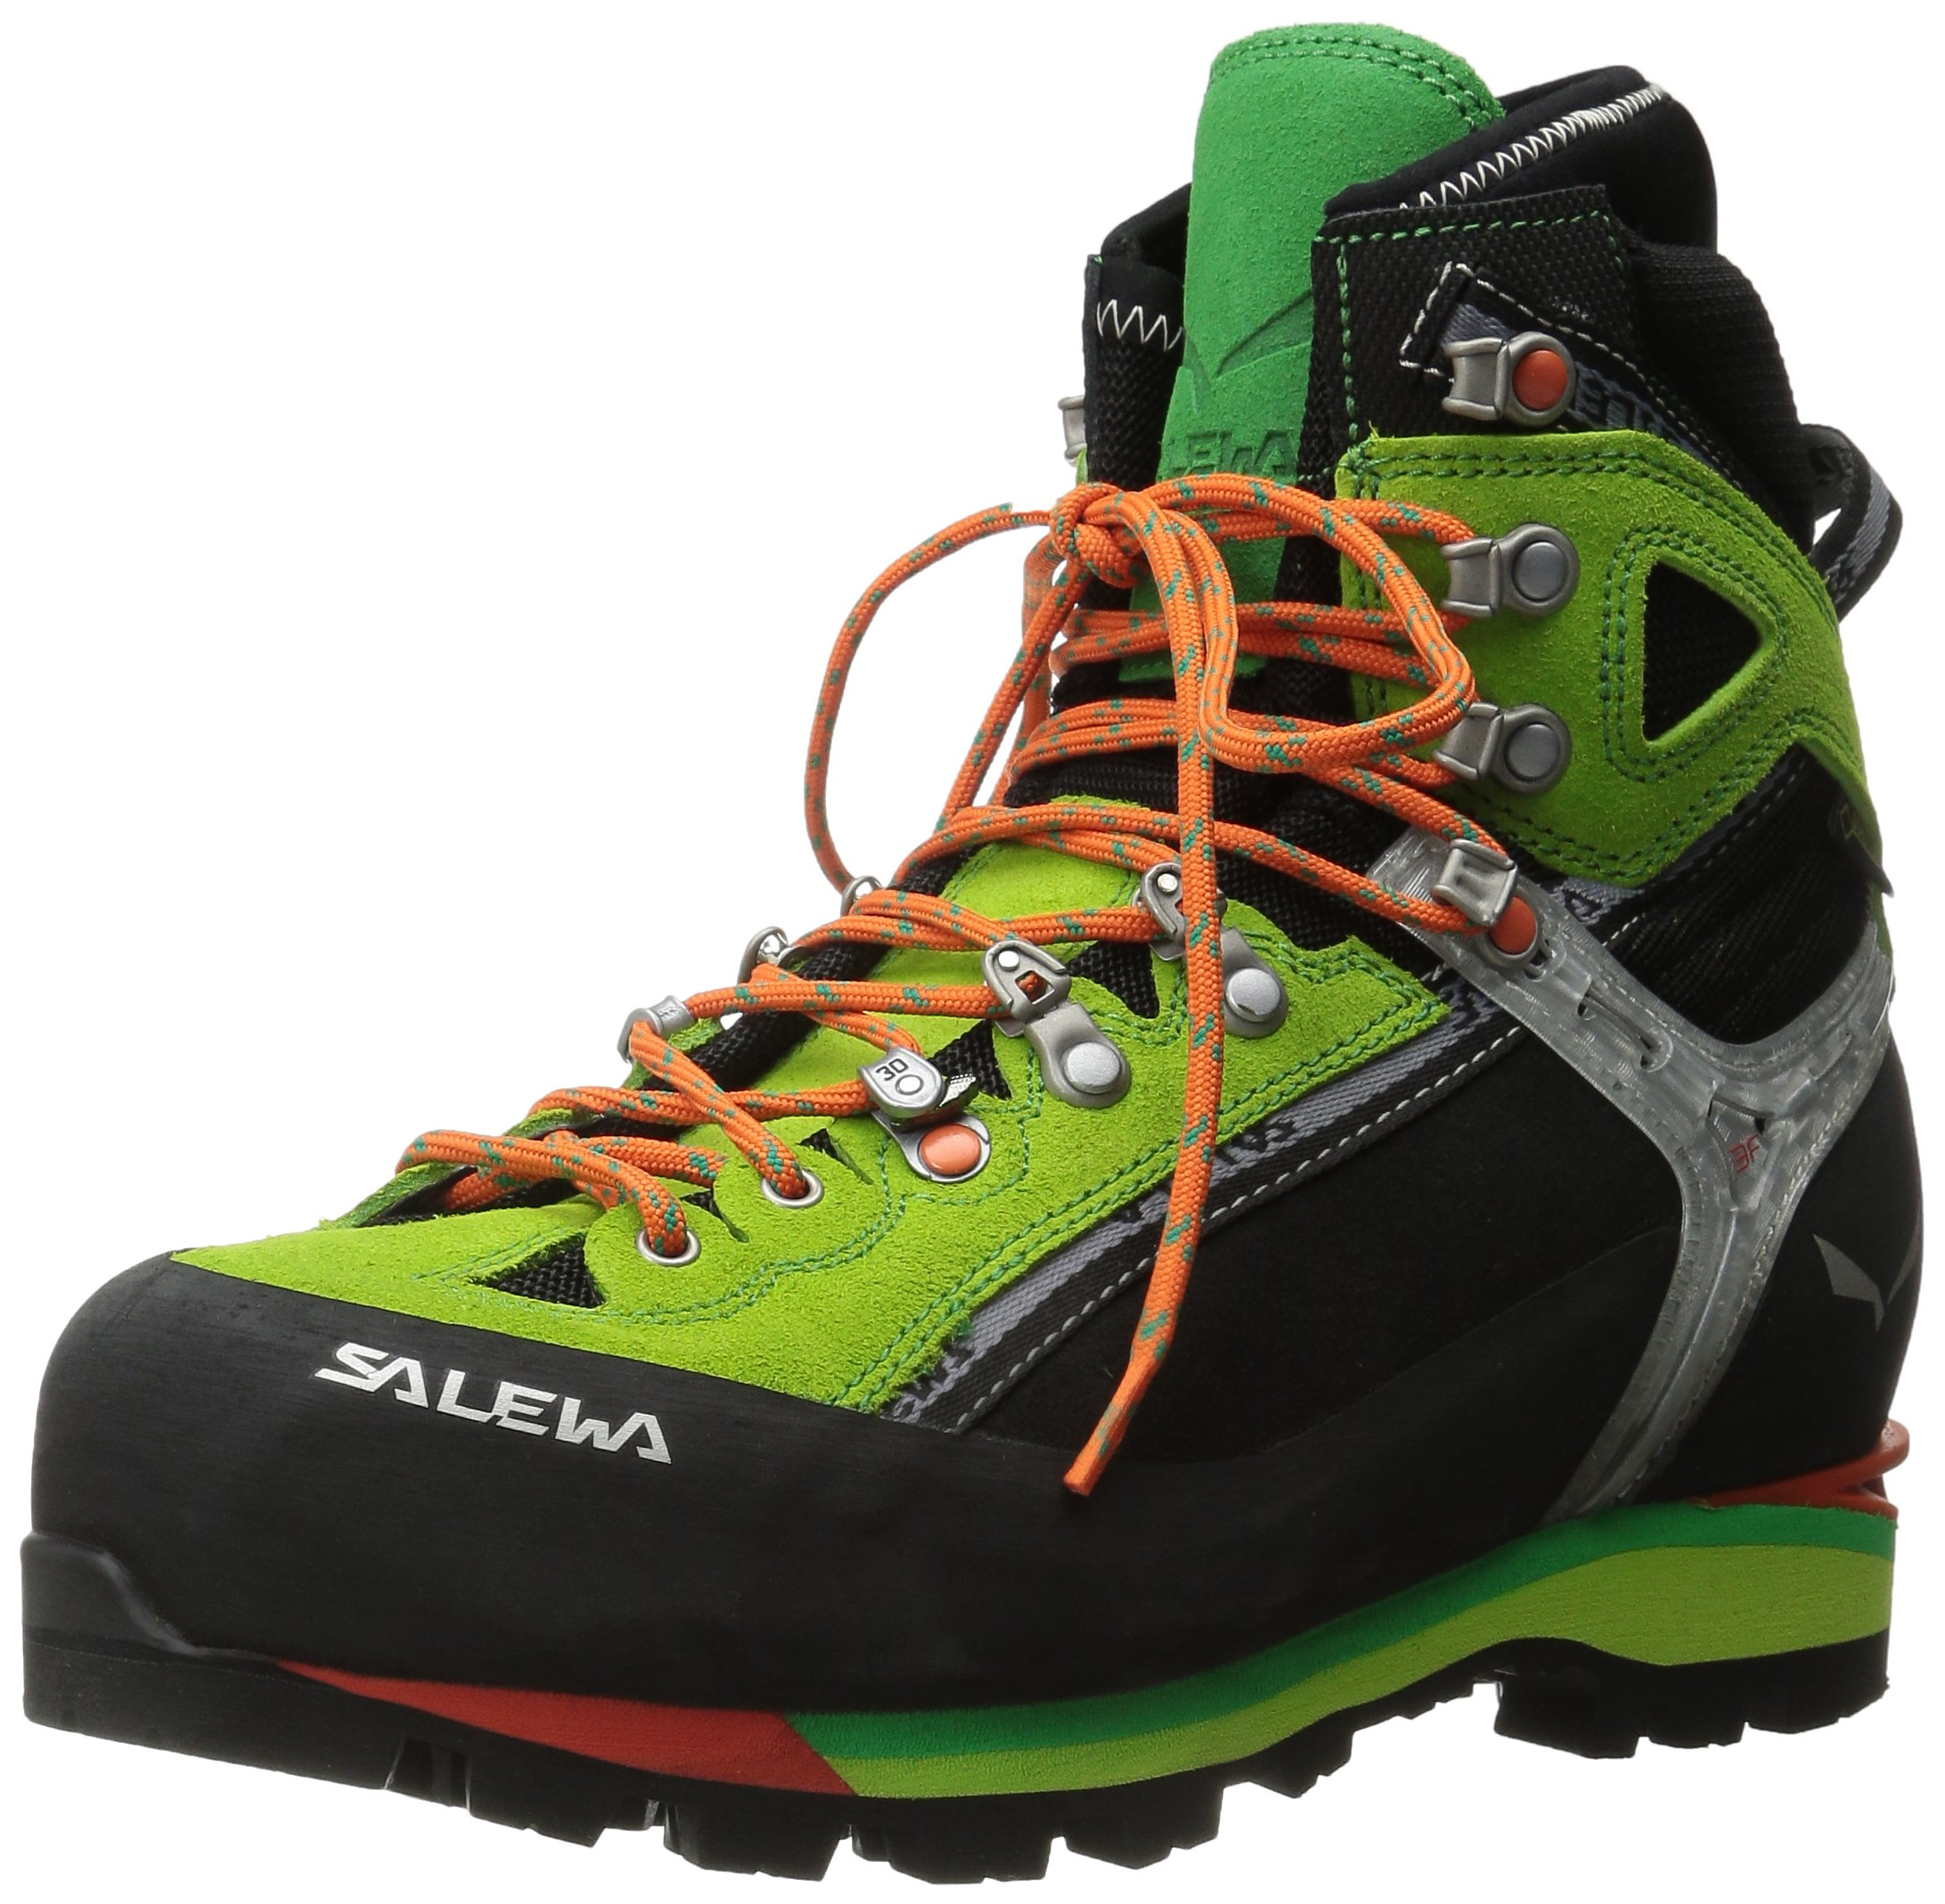 Salewa Men's MS Condor EVO GTX M Mountaineering Boot, Black/Cactus, 11 M US by Salewa